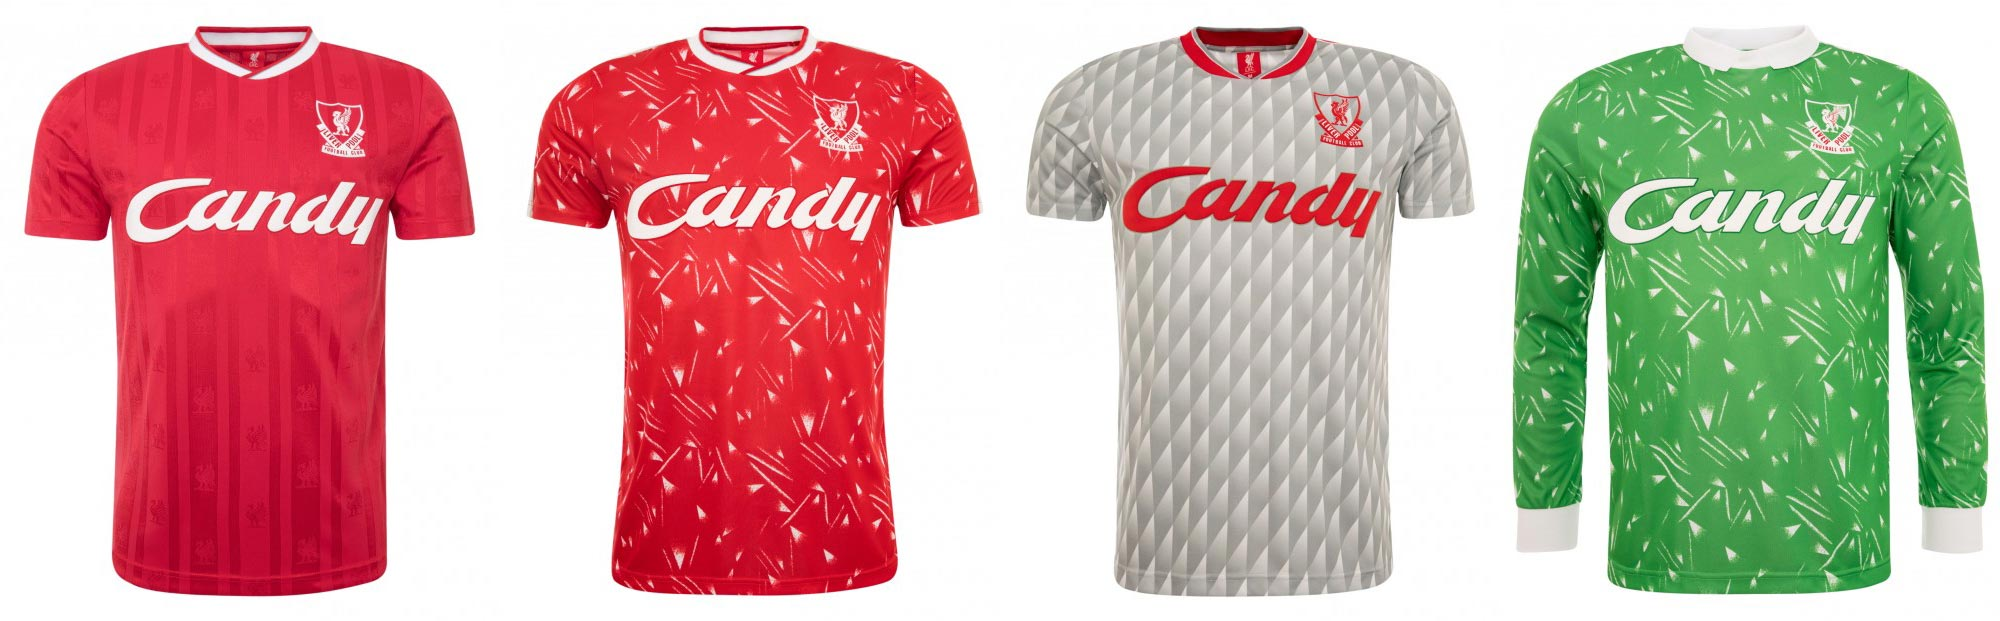 new style 365c3 80c9d Liverpool Brings Back Their Most Celebrated Kits in New ...